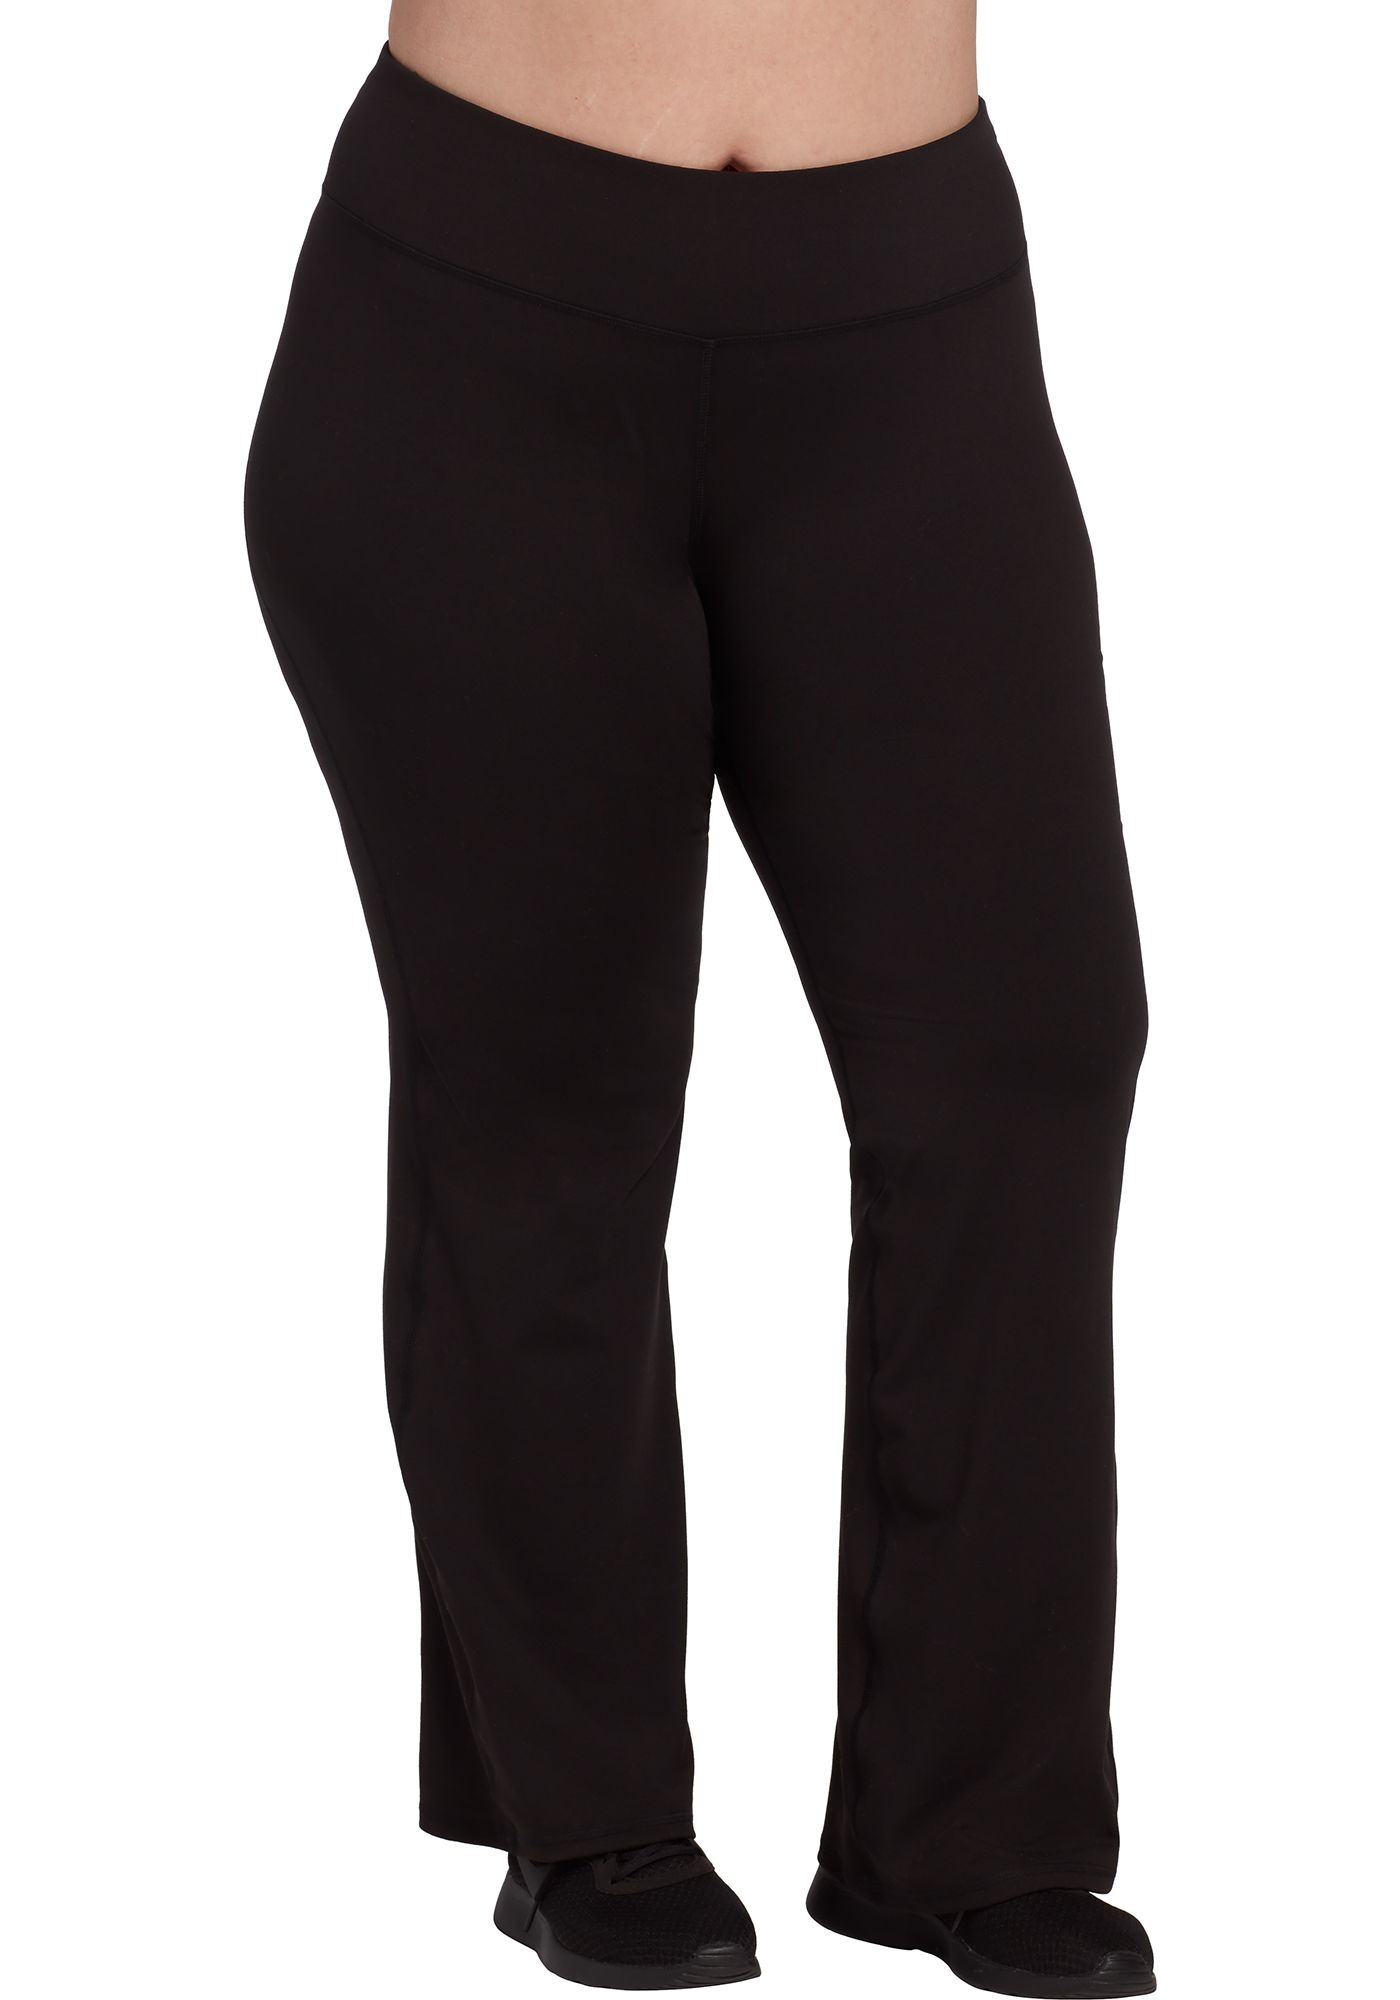 DSG Women's Plus Size Core Performance Flare Pants